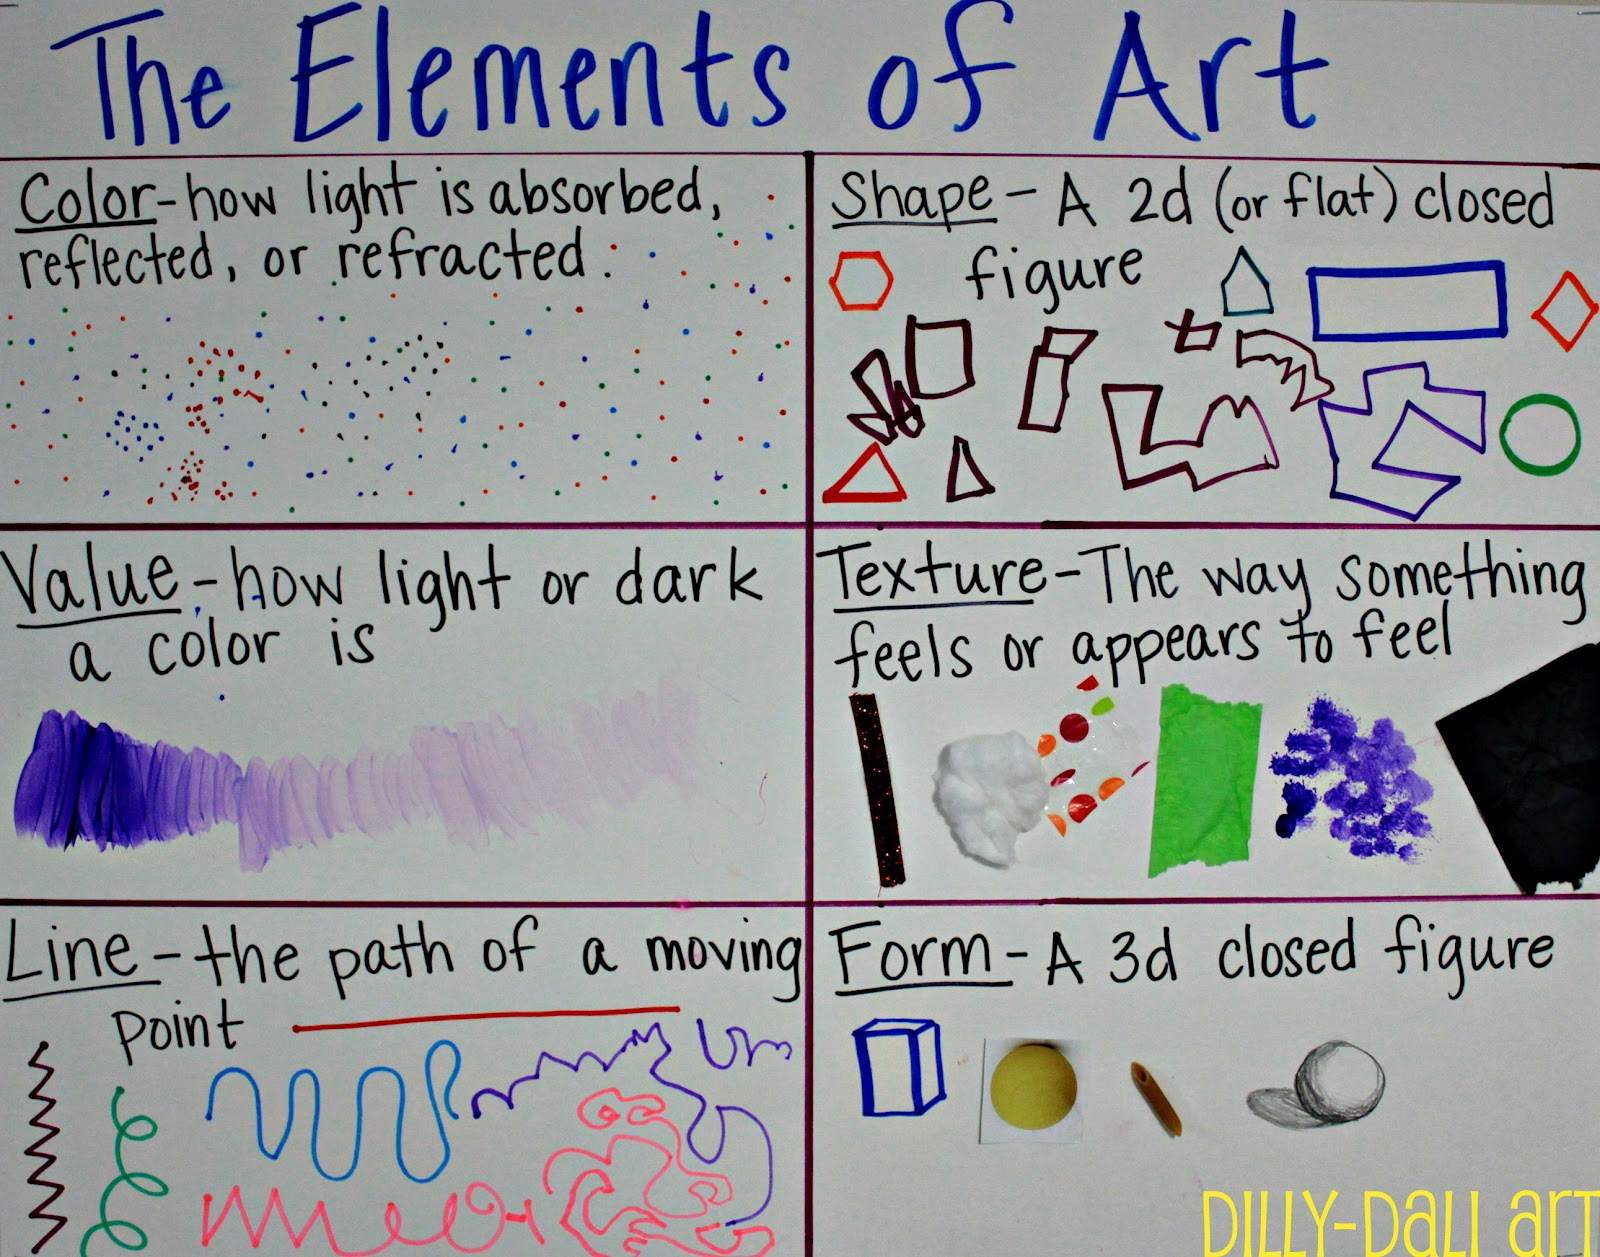 Elements Of Art Examples : Dilly dali art elements of poster